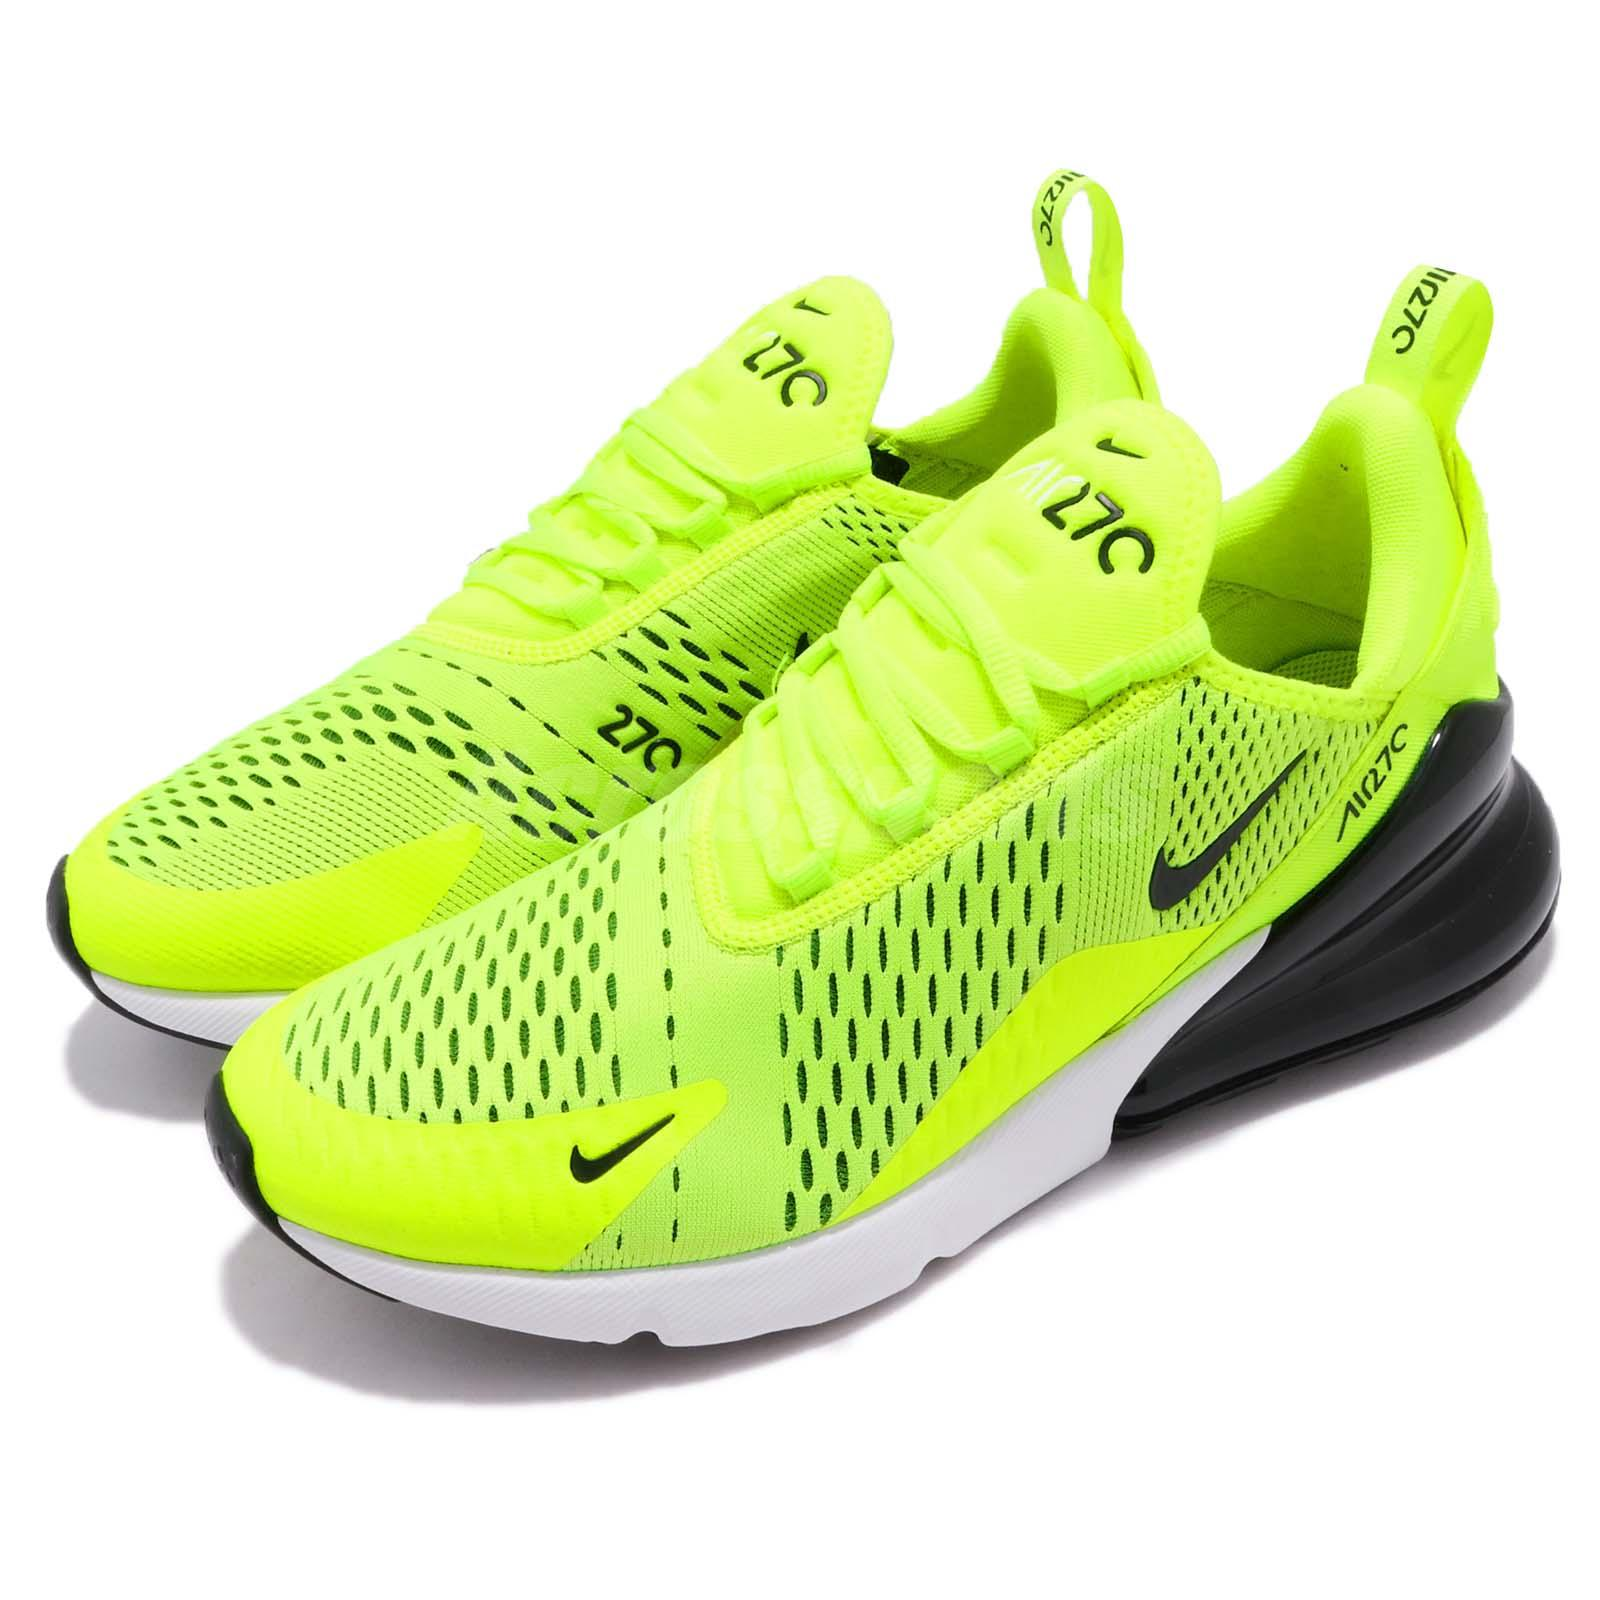 huge selection of 78ceb be5d5 Details about Nike Air Max 270 Volt Black White Men Running Casual Shoes  Sneakers AH8050-701